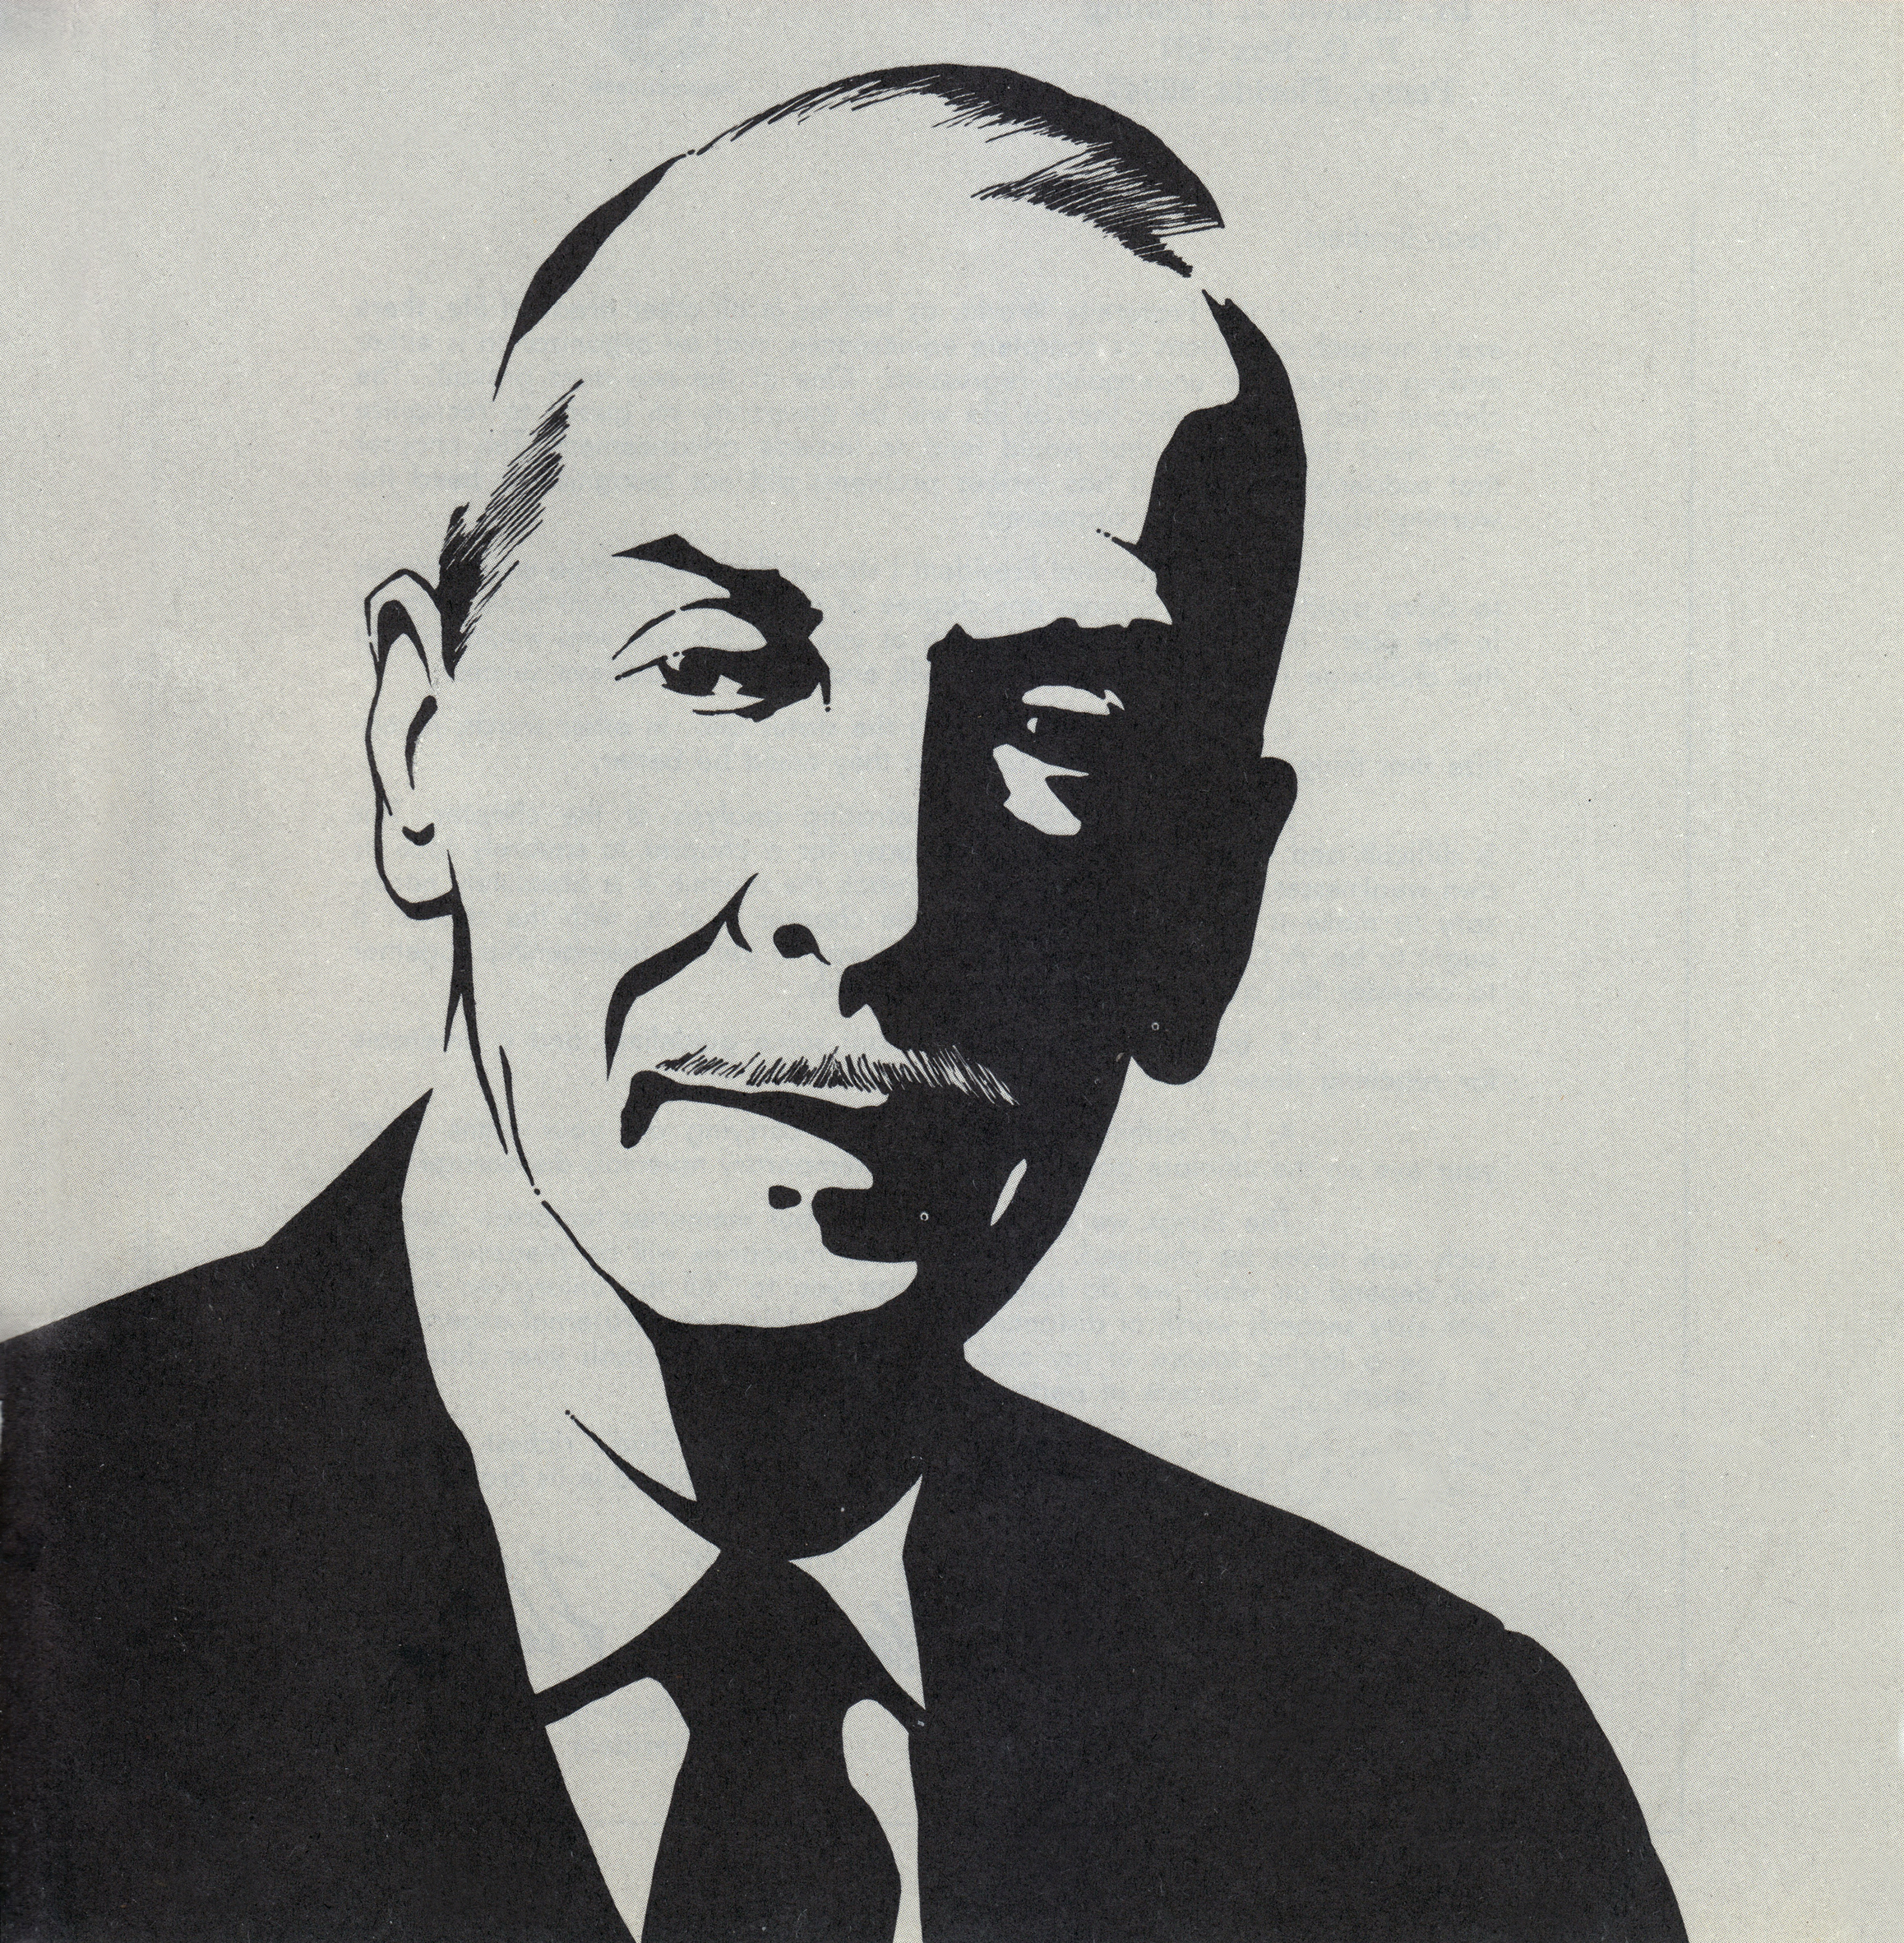 Cover Image of George W. Chapman from the Summer 1968 Rattle